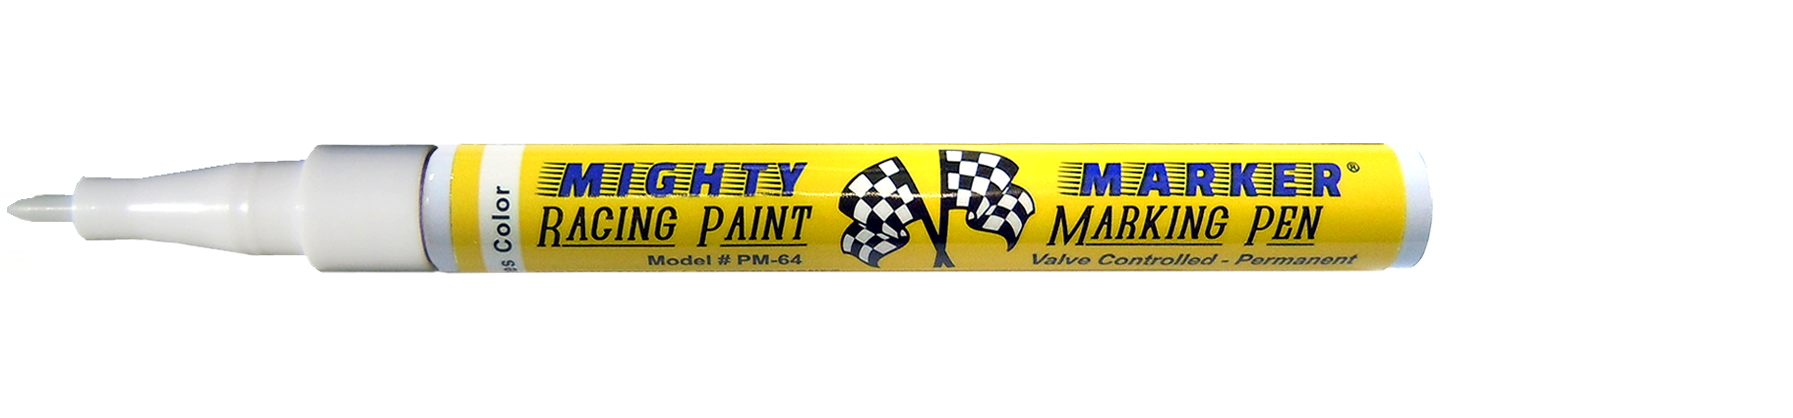 Mighty Marker Racing Paint